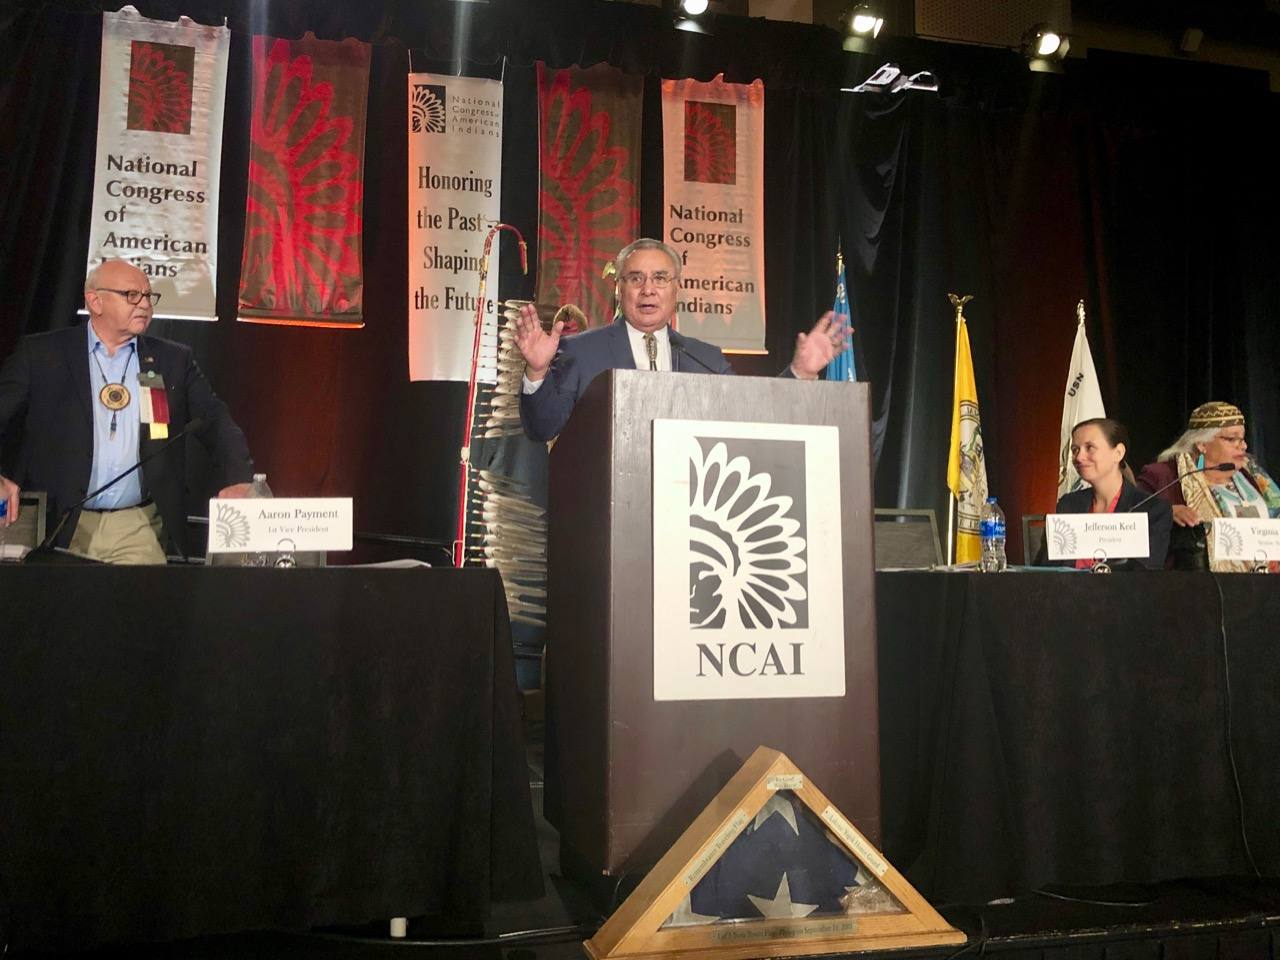 National Congress of American Indians opens annual convention amid controversy